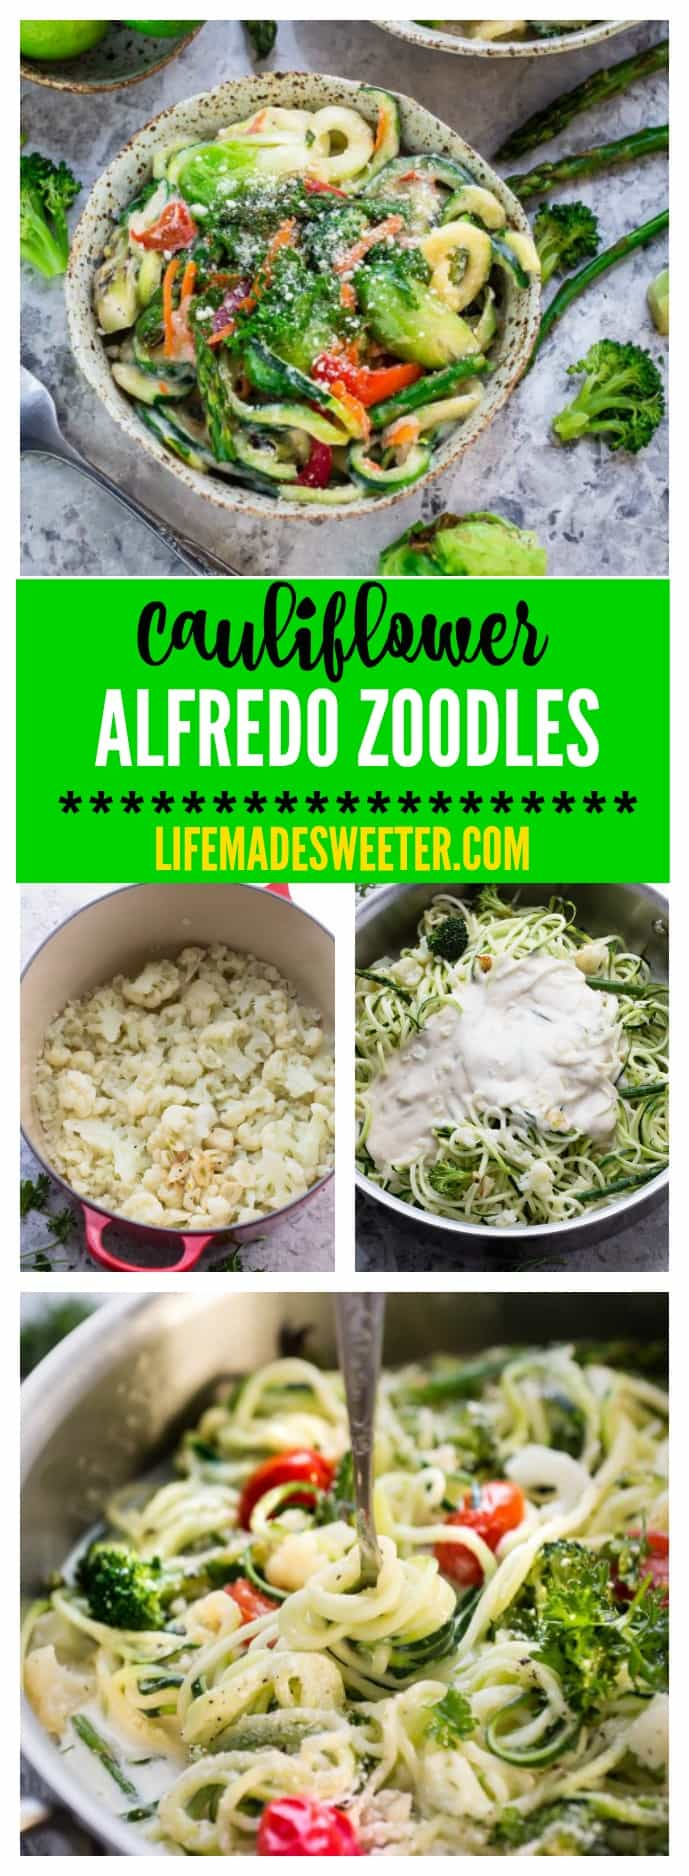 Zoodles Cauliflower Alfredo makes an easy & healthy weeknight meal. Gluten Free, Vegan, Paleo, Whole 30 -